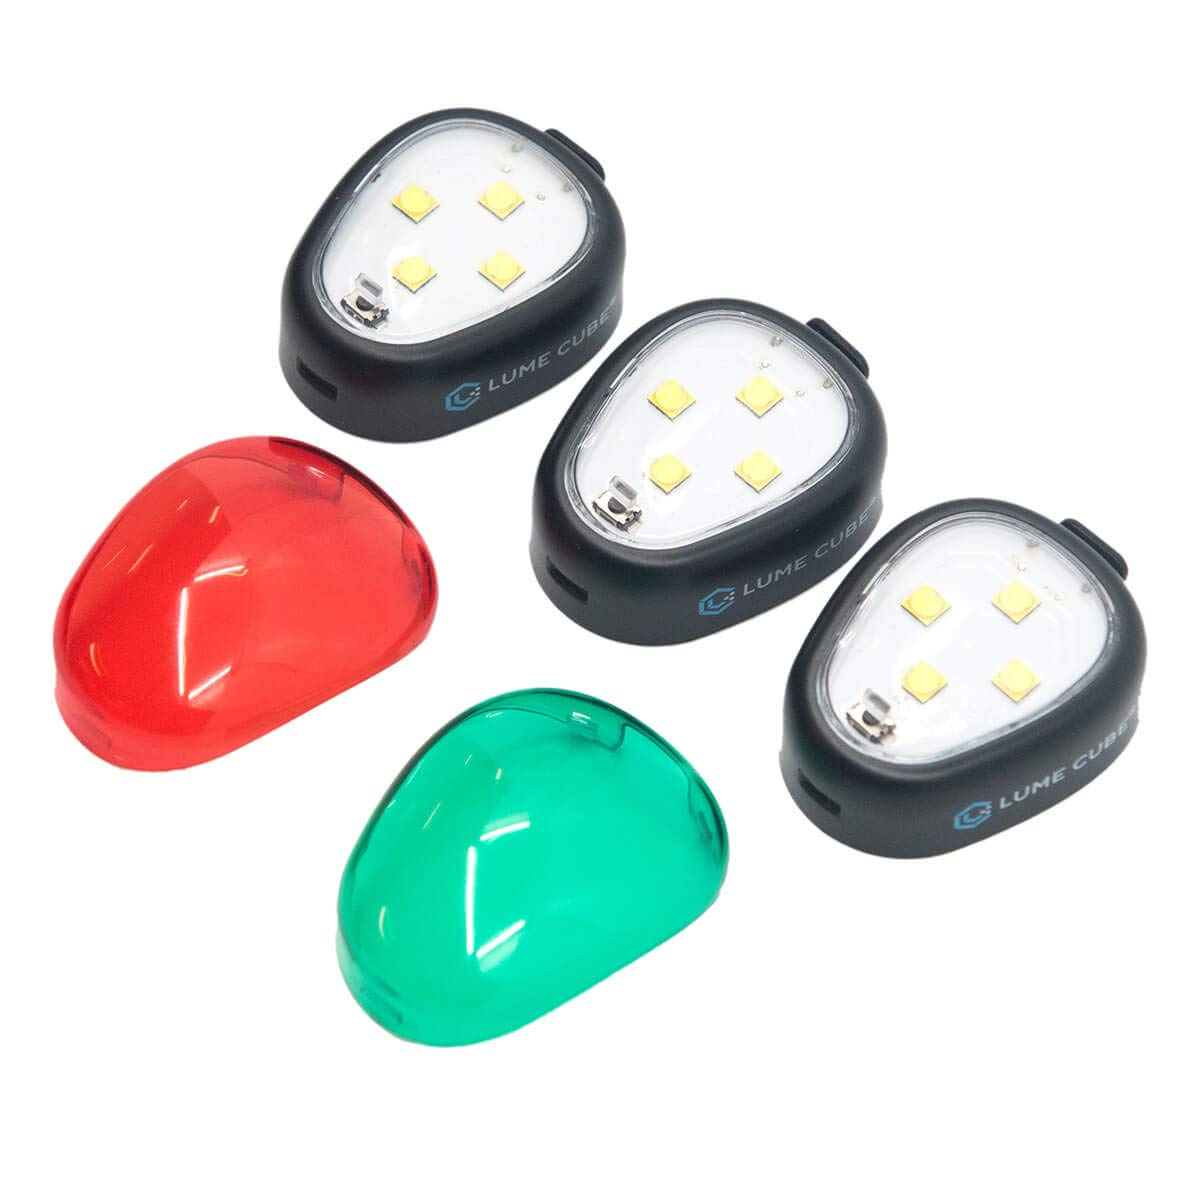 Lume Cube Strobe - Anti-Collision Lighting for Drones (3-Pack) by LUME CUBE